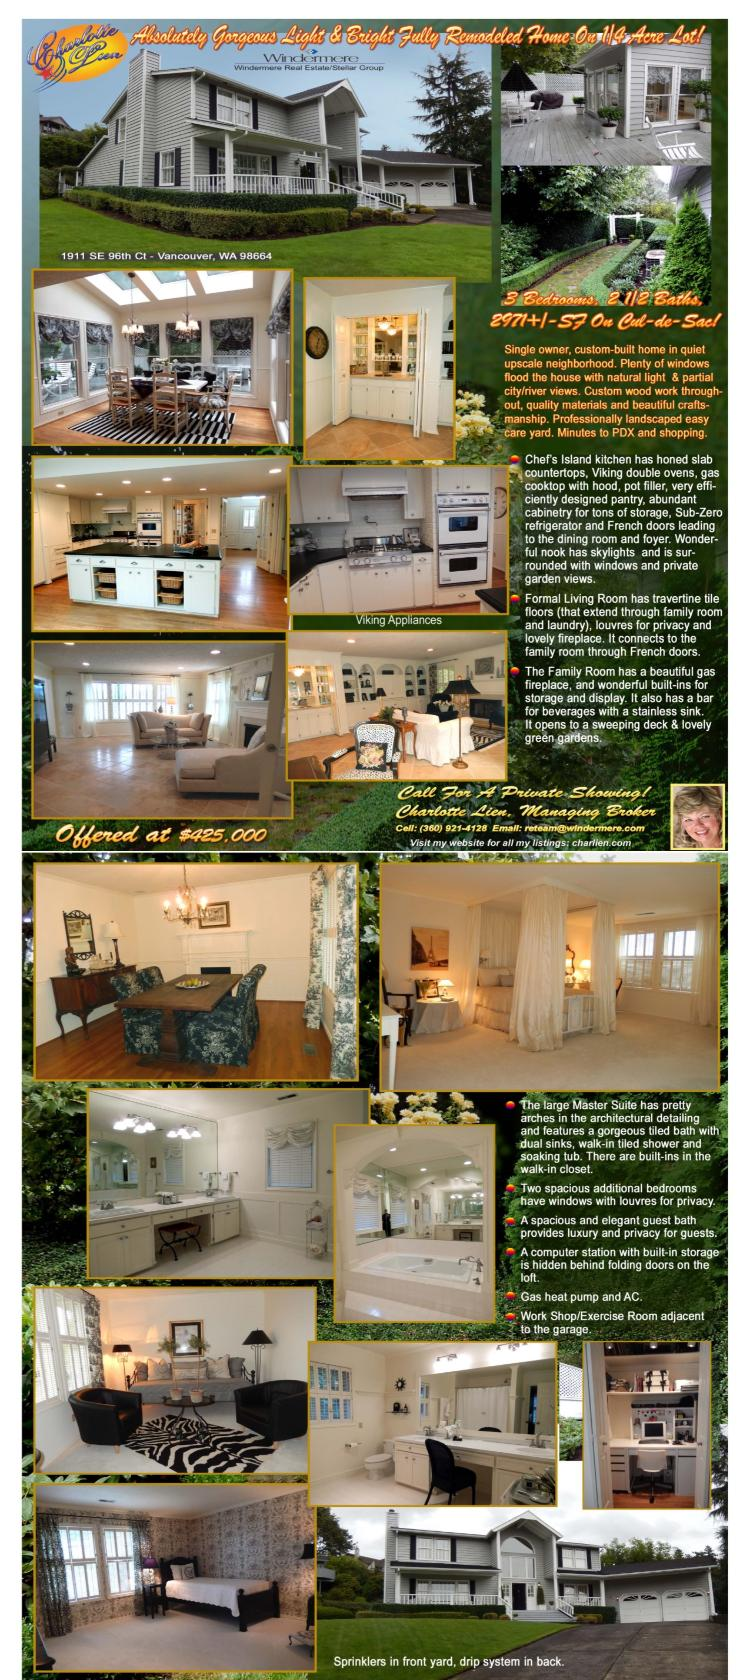 Real Estate for Sale at $425,000! Three Bedroom, two and a half Bath, 2971 square foot absolutely gorgeous two level custom view home on .26 acre lot on cul-de-sac at 1911 SE 96th Court, Vancouver, Washington 98664 in Clark County area 23 which is the East Heights area in Vancouver. The RMLS number is 13513776. It has two fireplaces with one as a gas fireplace and the other is a wood burning one. It has a view of a river and was built in 1983. The local high school is Mountain View High. The annual taxes due are $5,014.87. It is not a short sale nor a bank owned property. The listing agent is Charlotte Lien with Windermere/Stellar Group located at 12500 SE 2nd Circle Suite 205, Vancouver, Washington 98684. Her email address is reteam@windermere.com. All information on this eFlyer is believed to be reliable as of October 27th, 2013, but is not guaranteed and subject to change. Buyer is to verify all information. Say you saw this listing information on http://www.ezRealEstateFlyers.com.